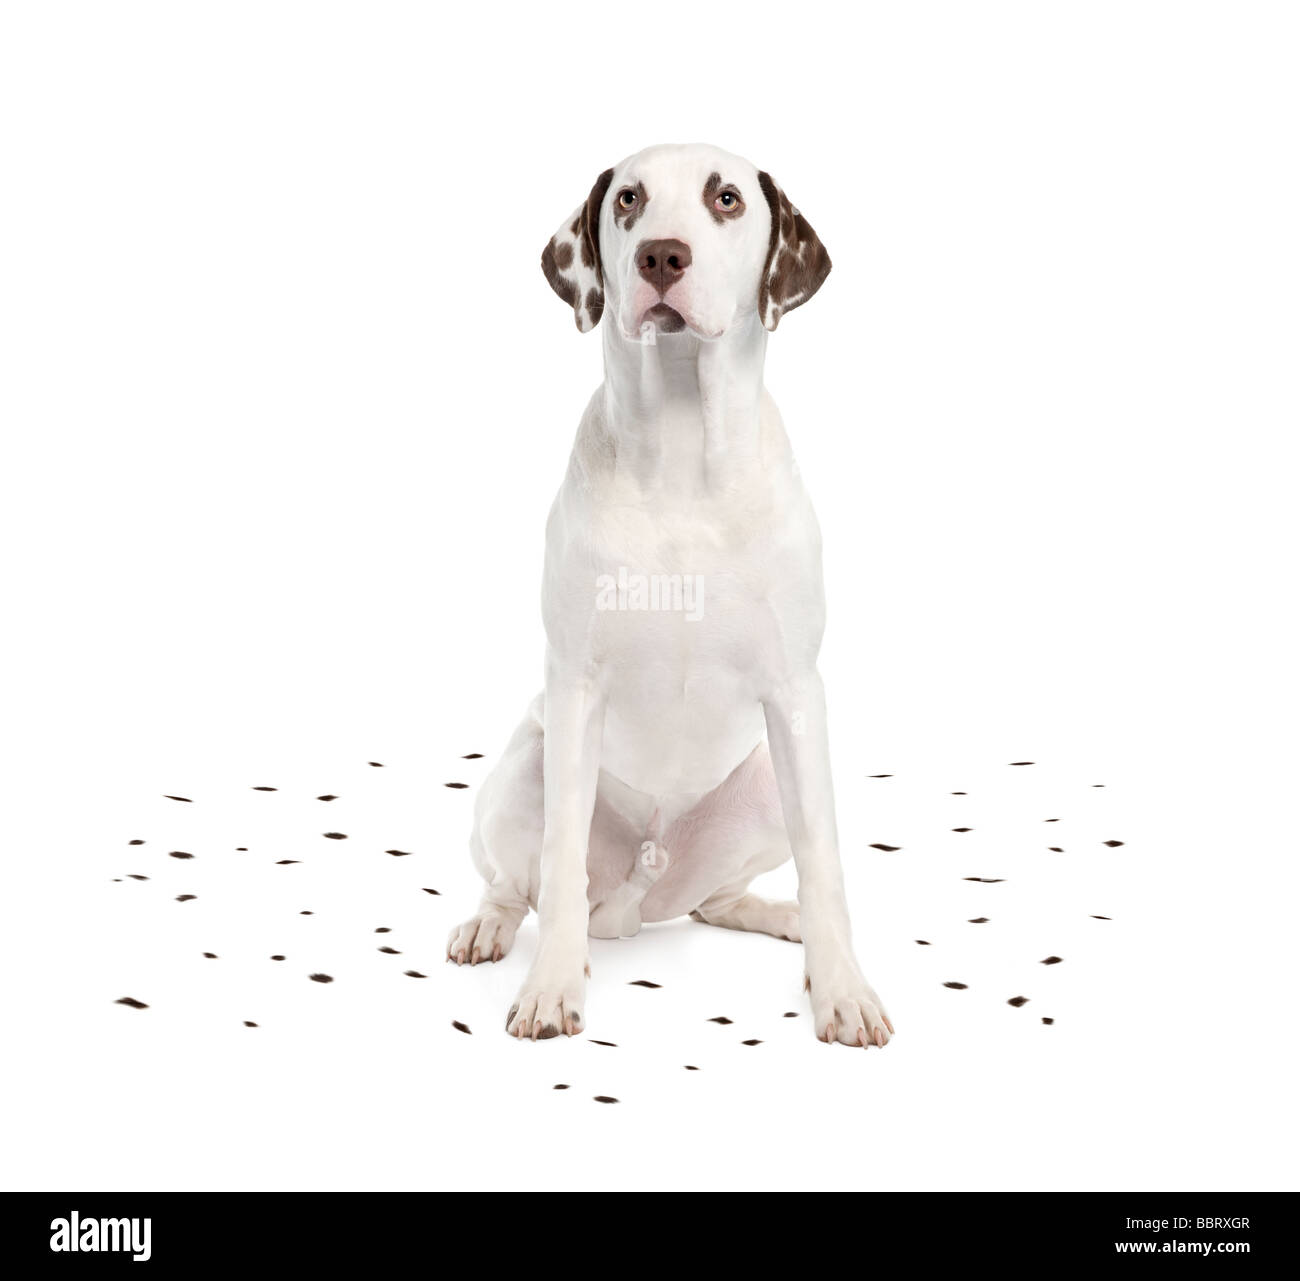 Dalmatian shedding its spots in front of a white background - Stock Image